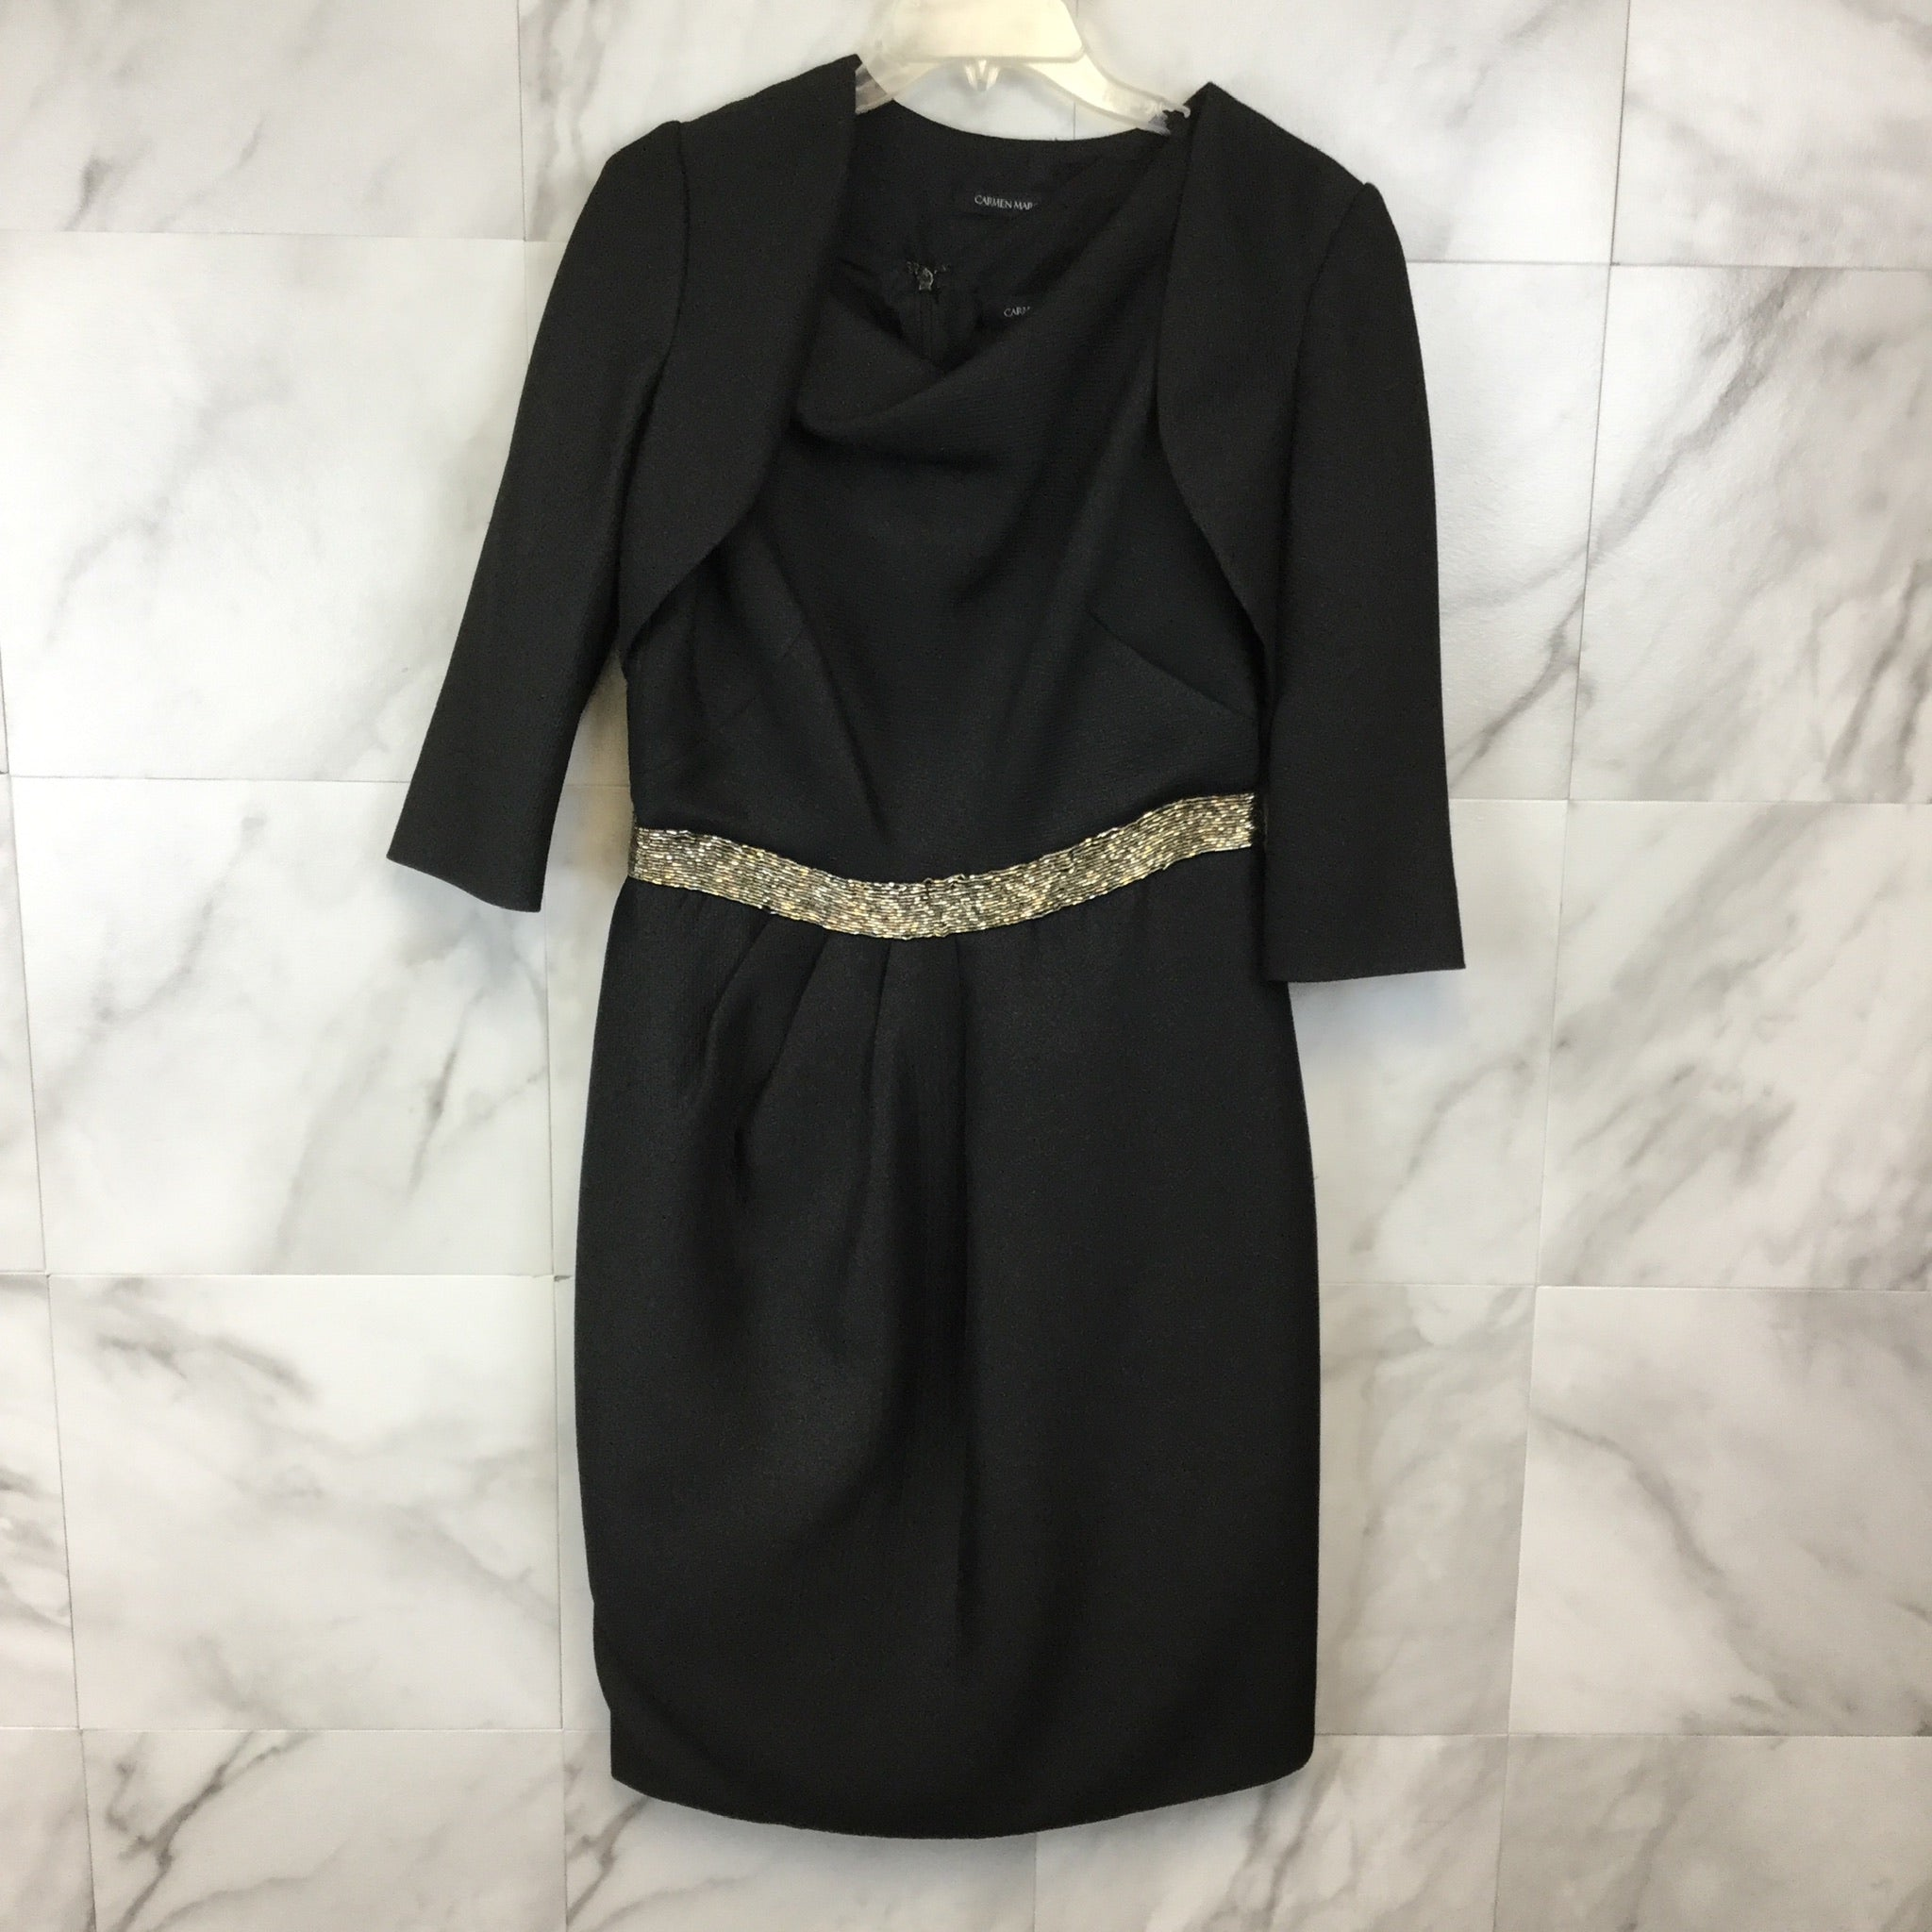 Carmen Marc Valvo 2 Piece Dress & Jacket Set - Size 8